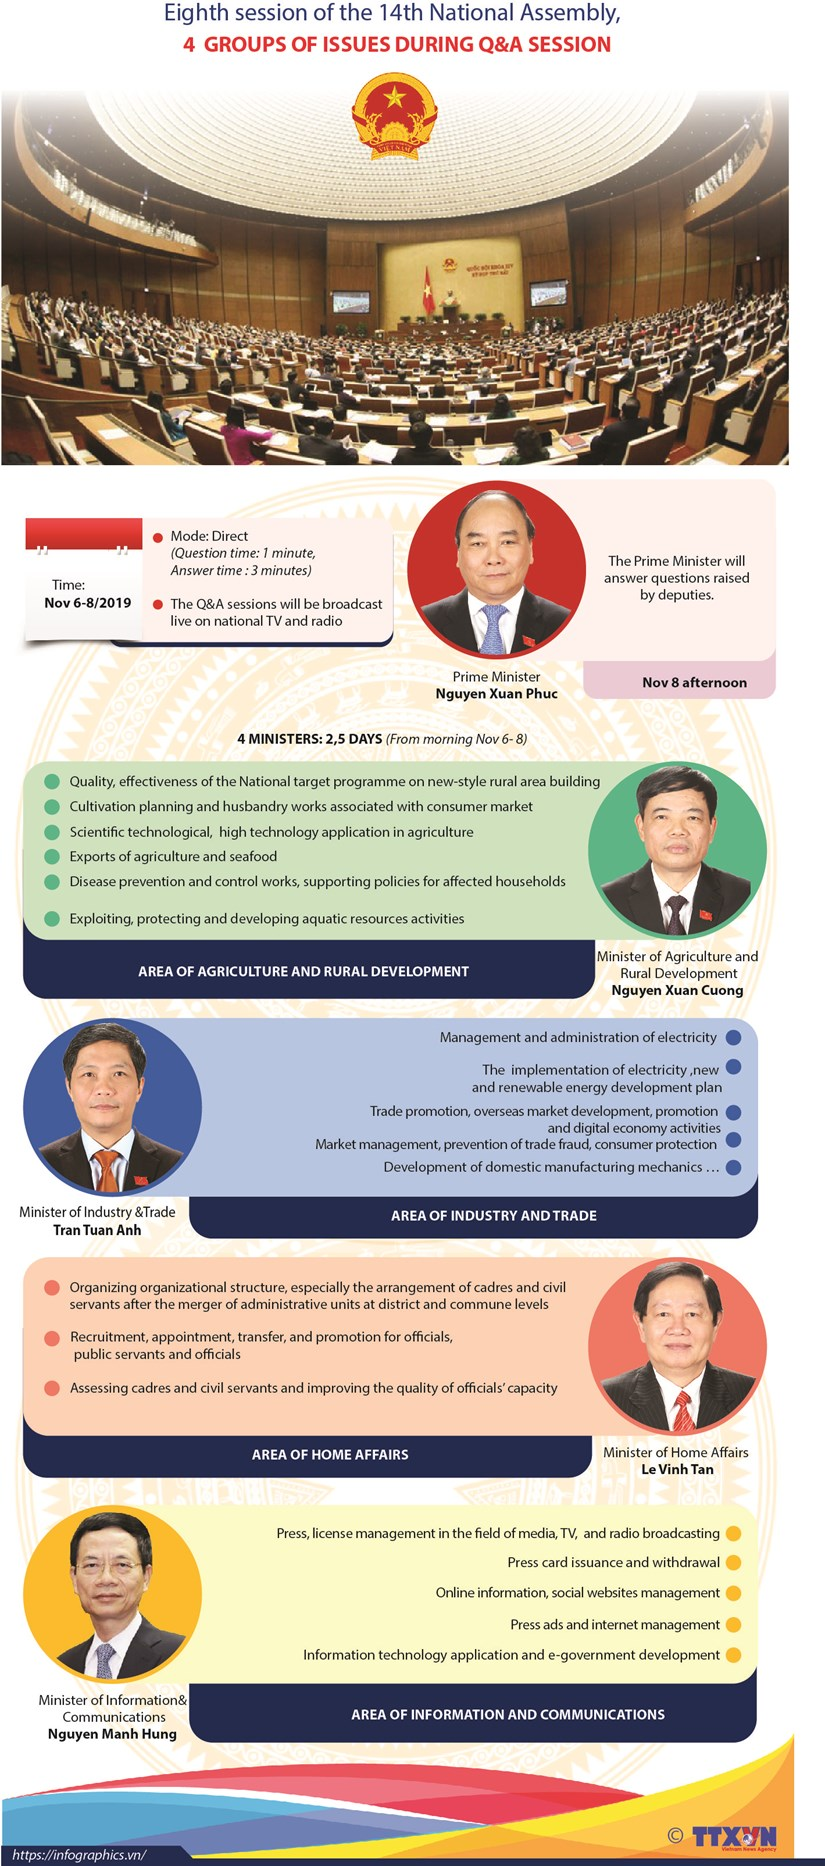 Eighth session of 14th National Assembly hinh anh 1